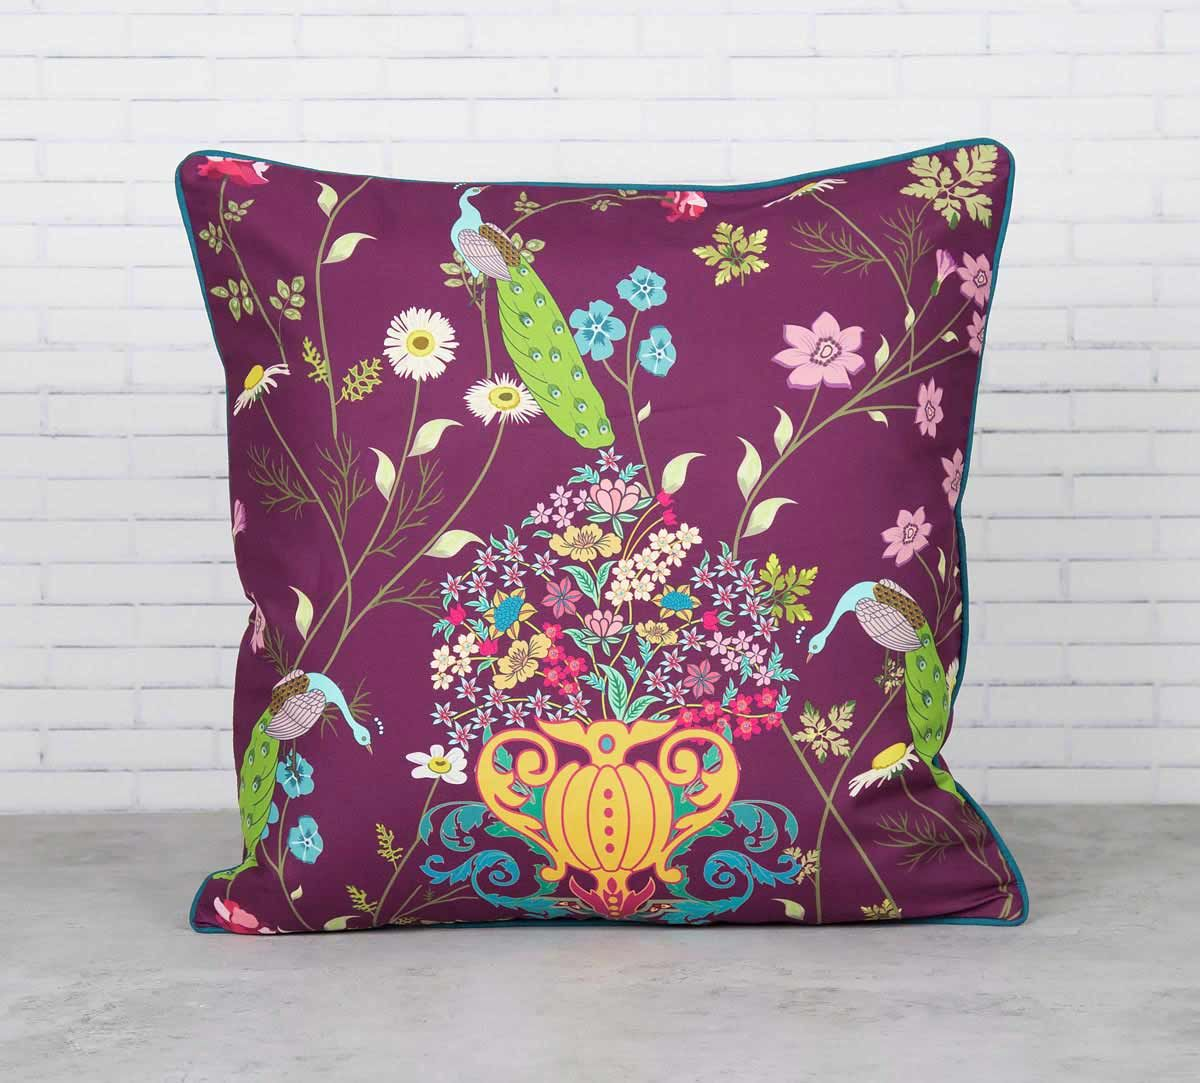 Enchanted Yield Satin Blend Cushion Cover